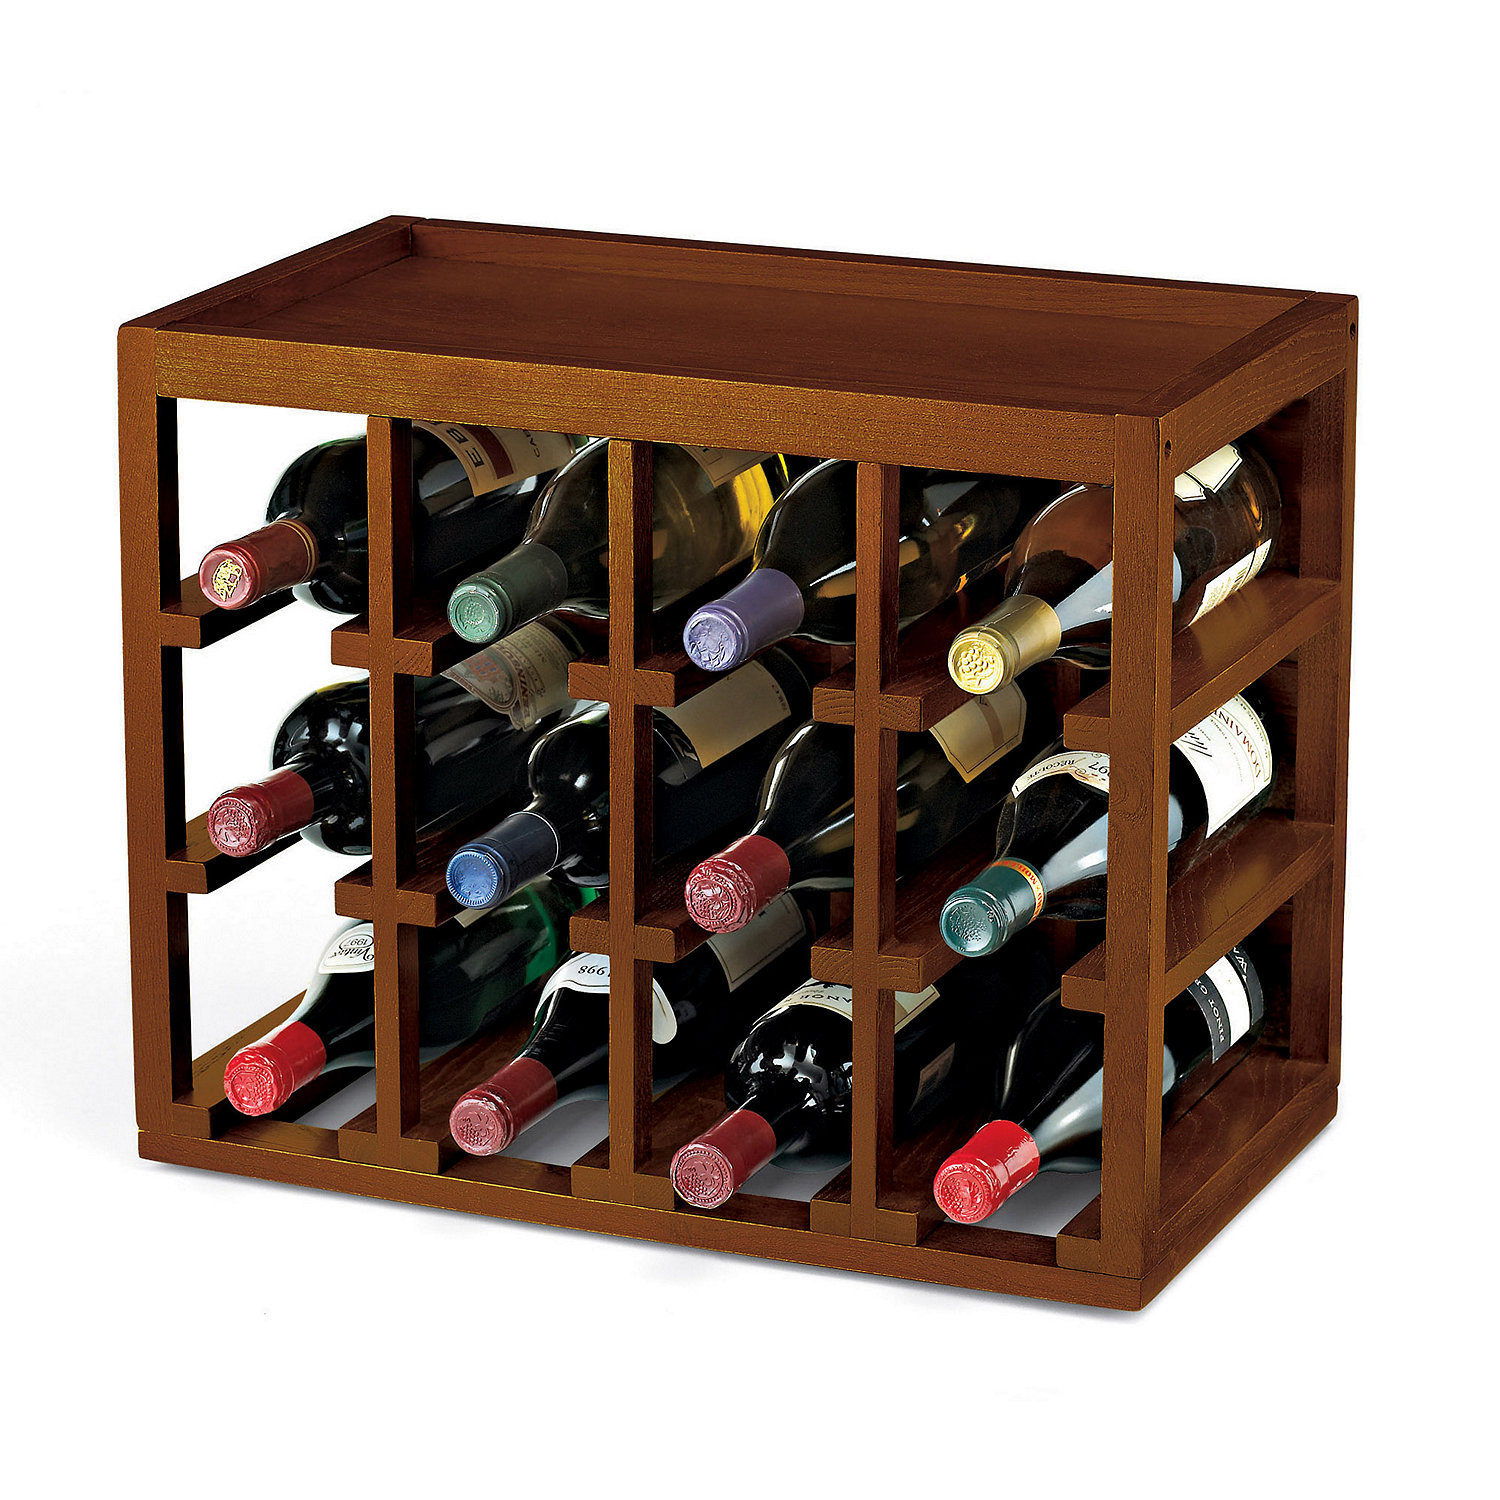 12 bottle cube stack wine rack wine enthusiast rh wineenthusiast com wooden wine shelving wooden wine storage crates